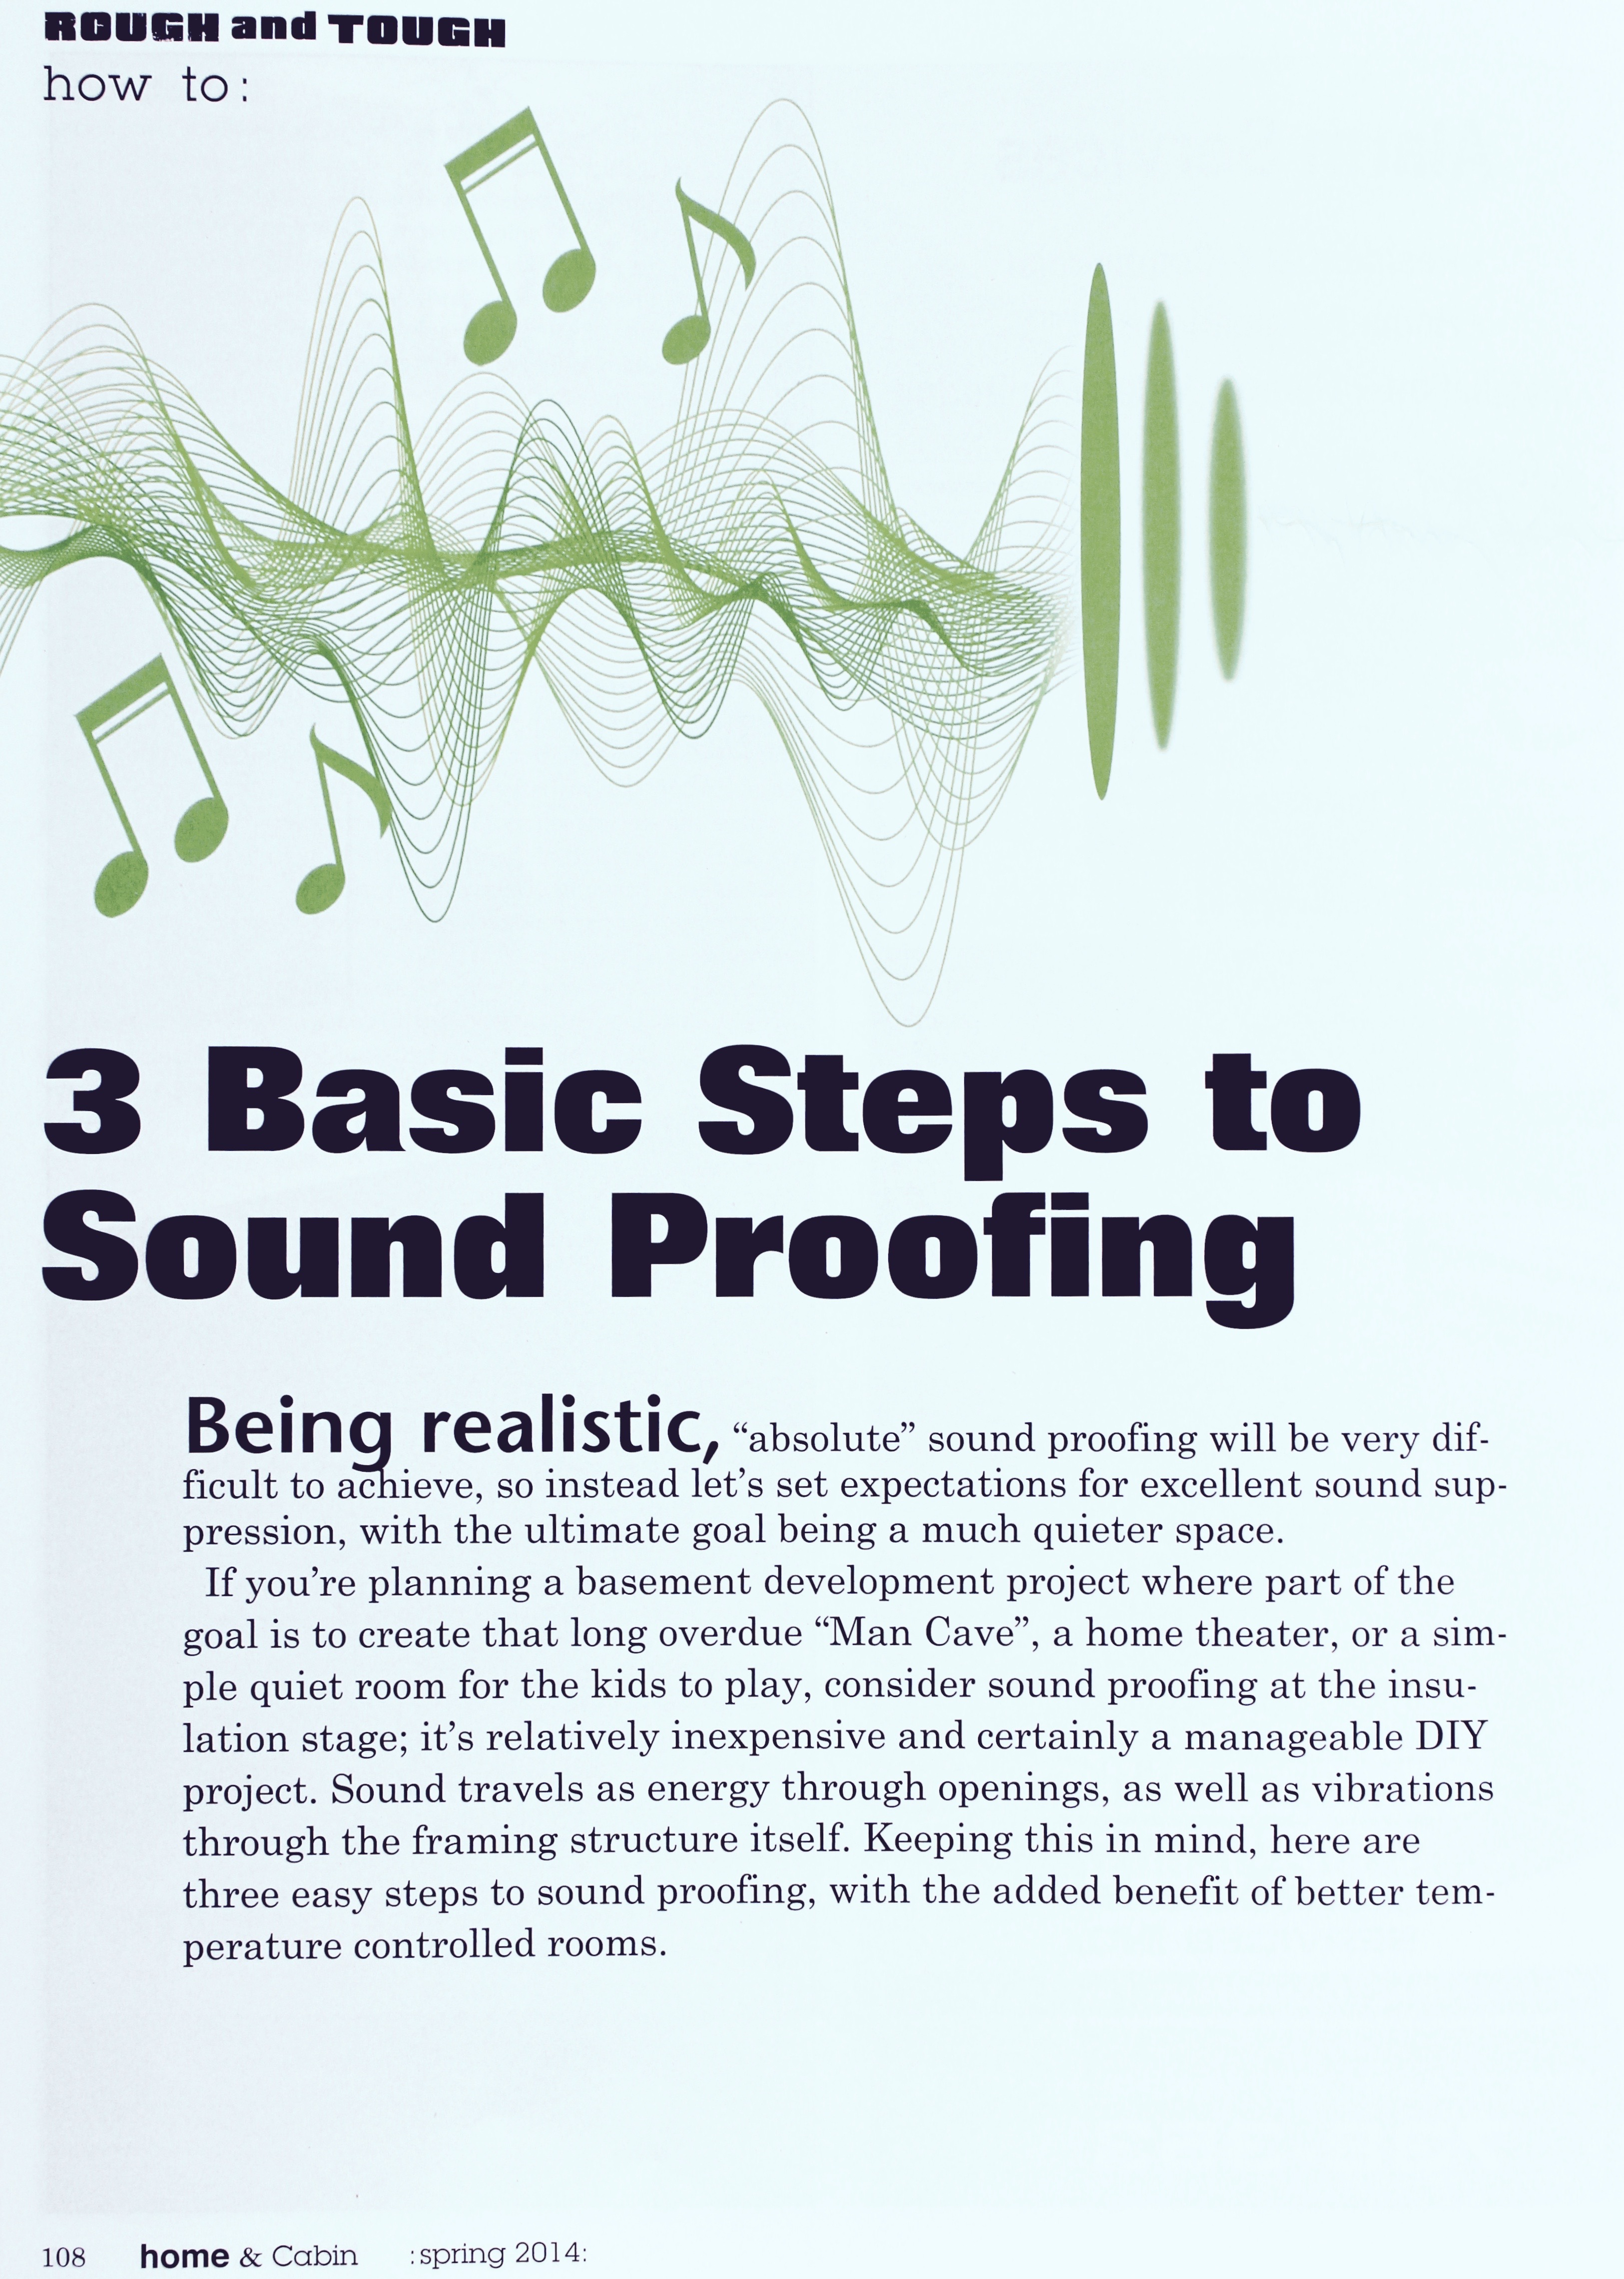 3 Basic Steps to Sound Proofing